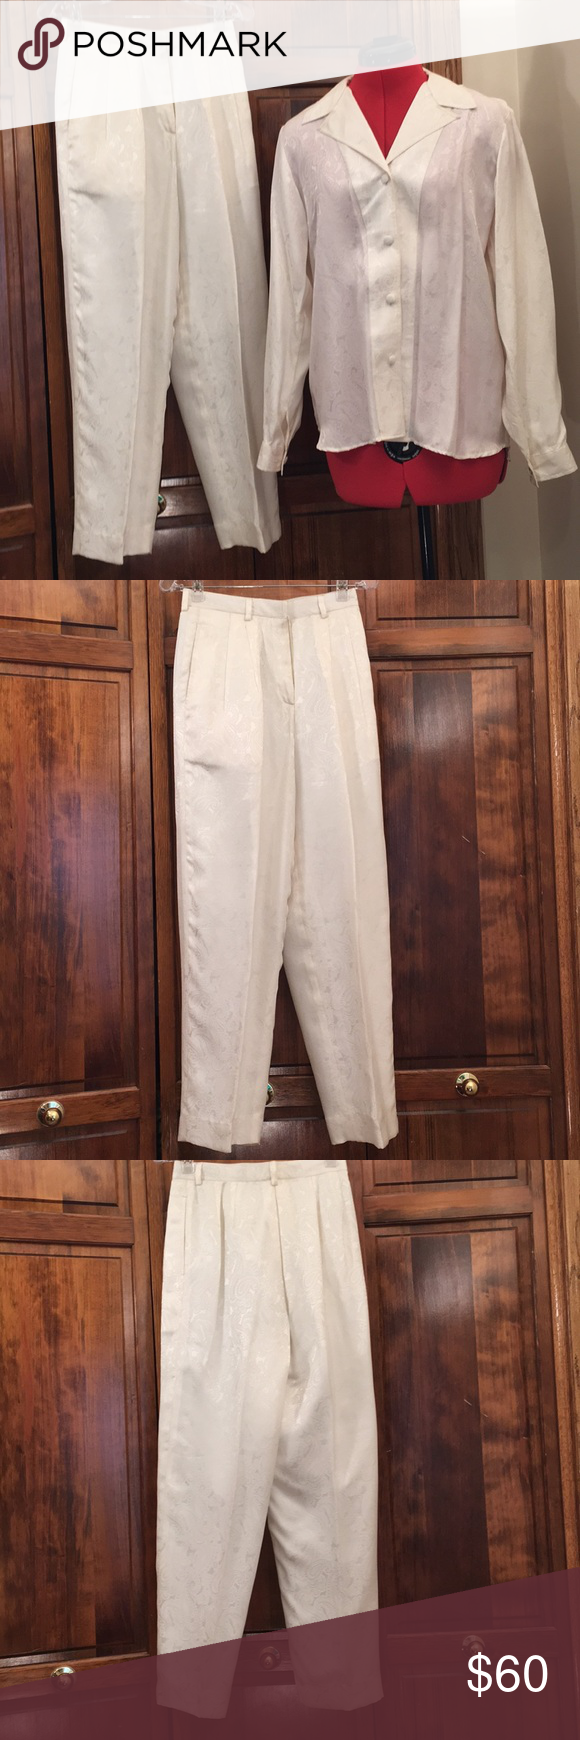 Custom made women's white pantsuit. Custom made women's white pantsuit, no tags, one small dark mark on front of shirt at bottom, very nice condition. Other #whitepantsuit